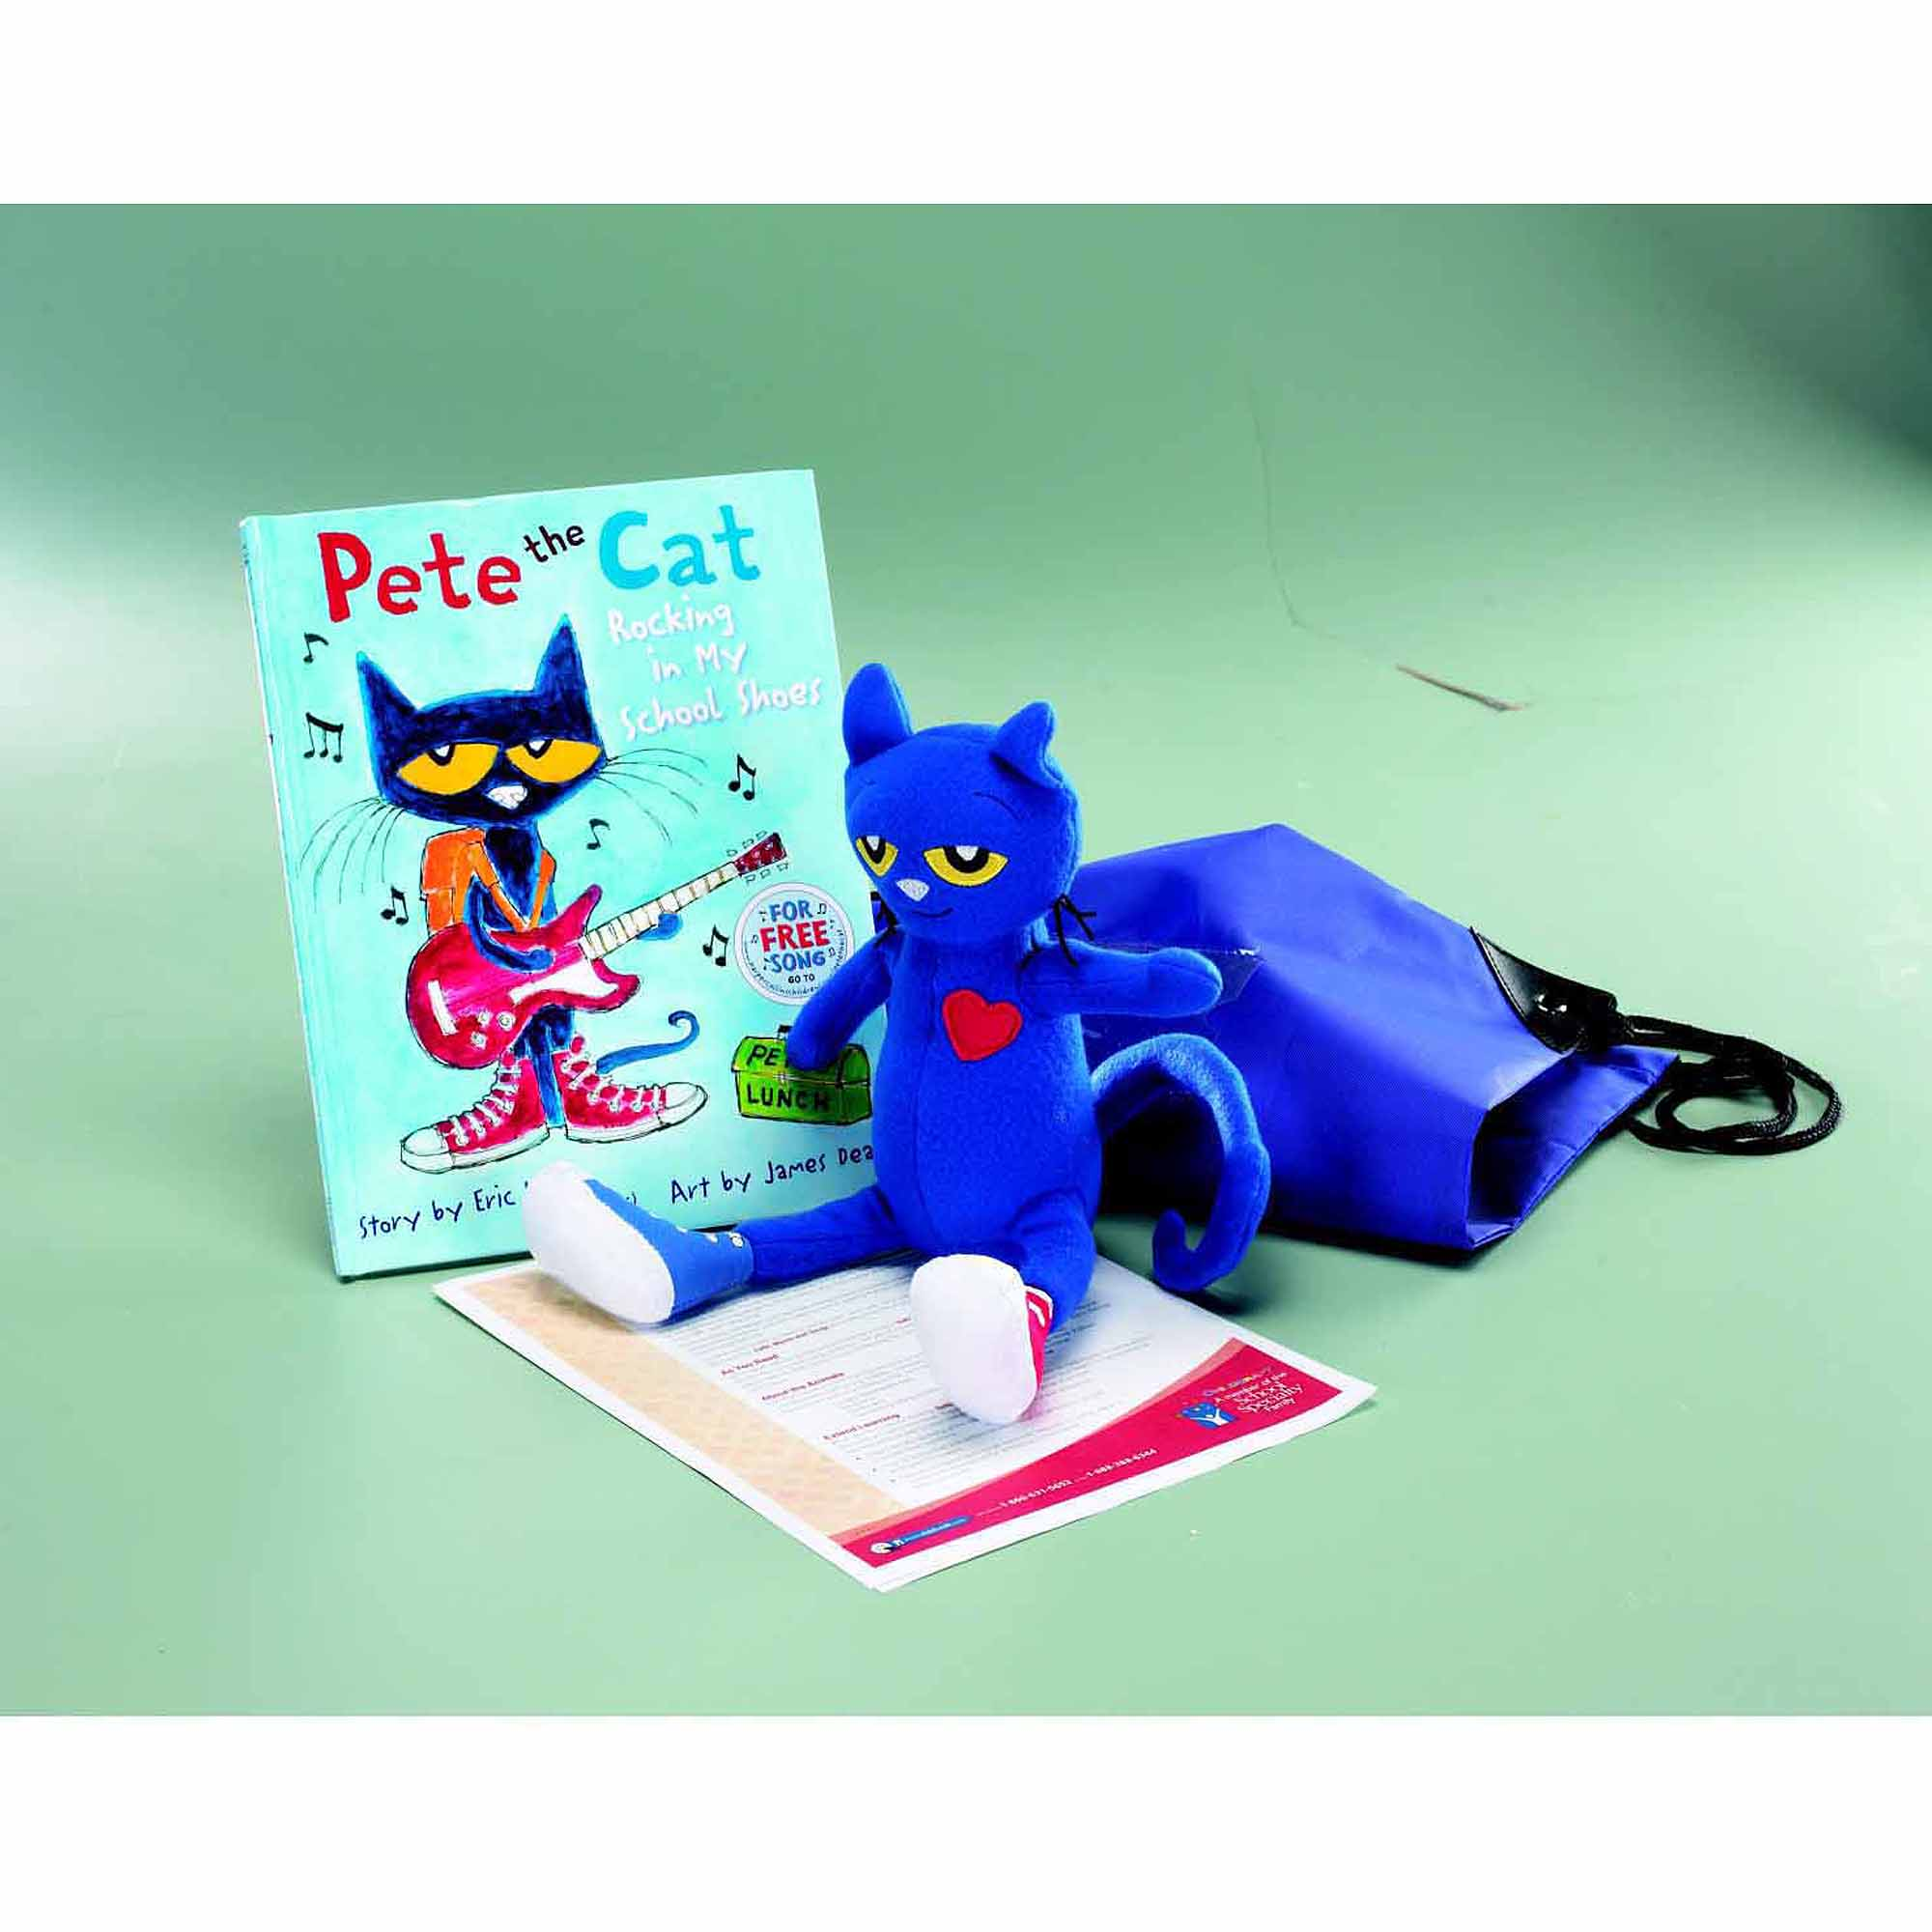 Childcraft Pete the Cat Rocking in My School Shoes, by Eric Litwin Literacy Bag - Walmart.com